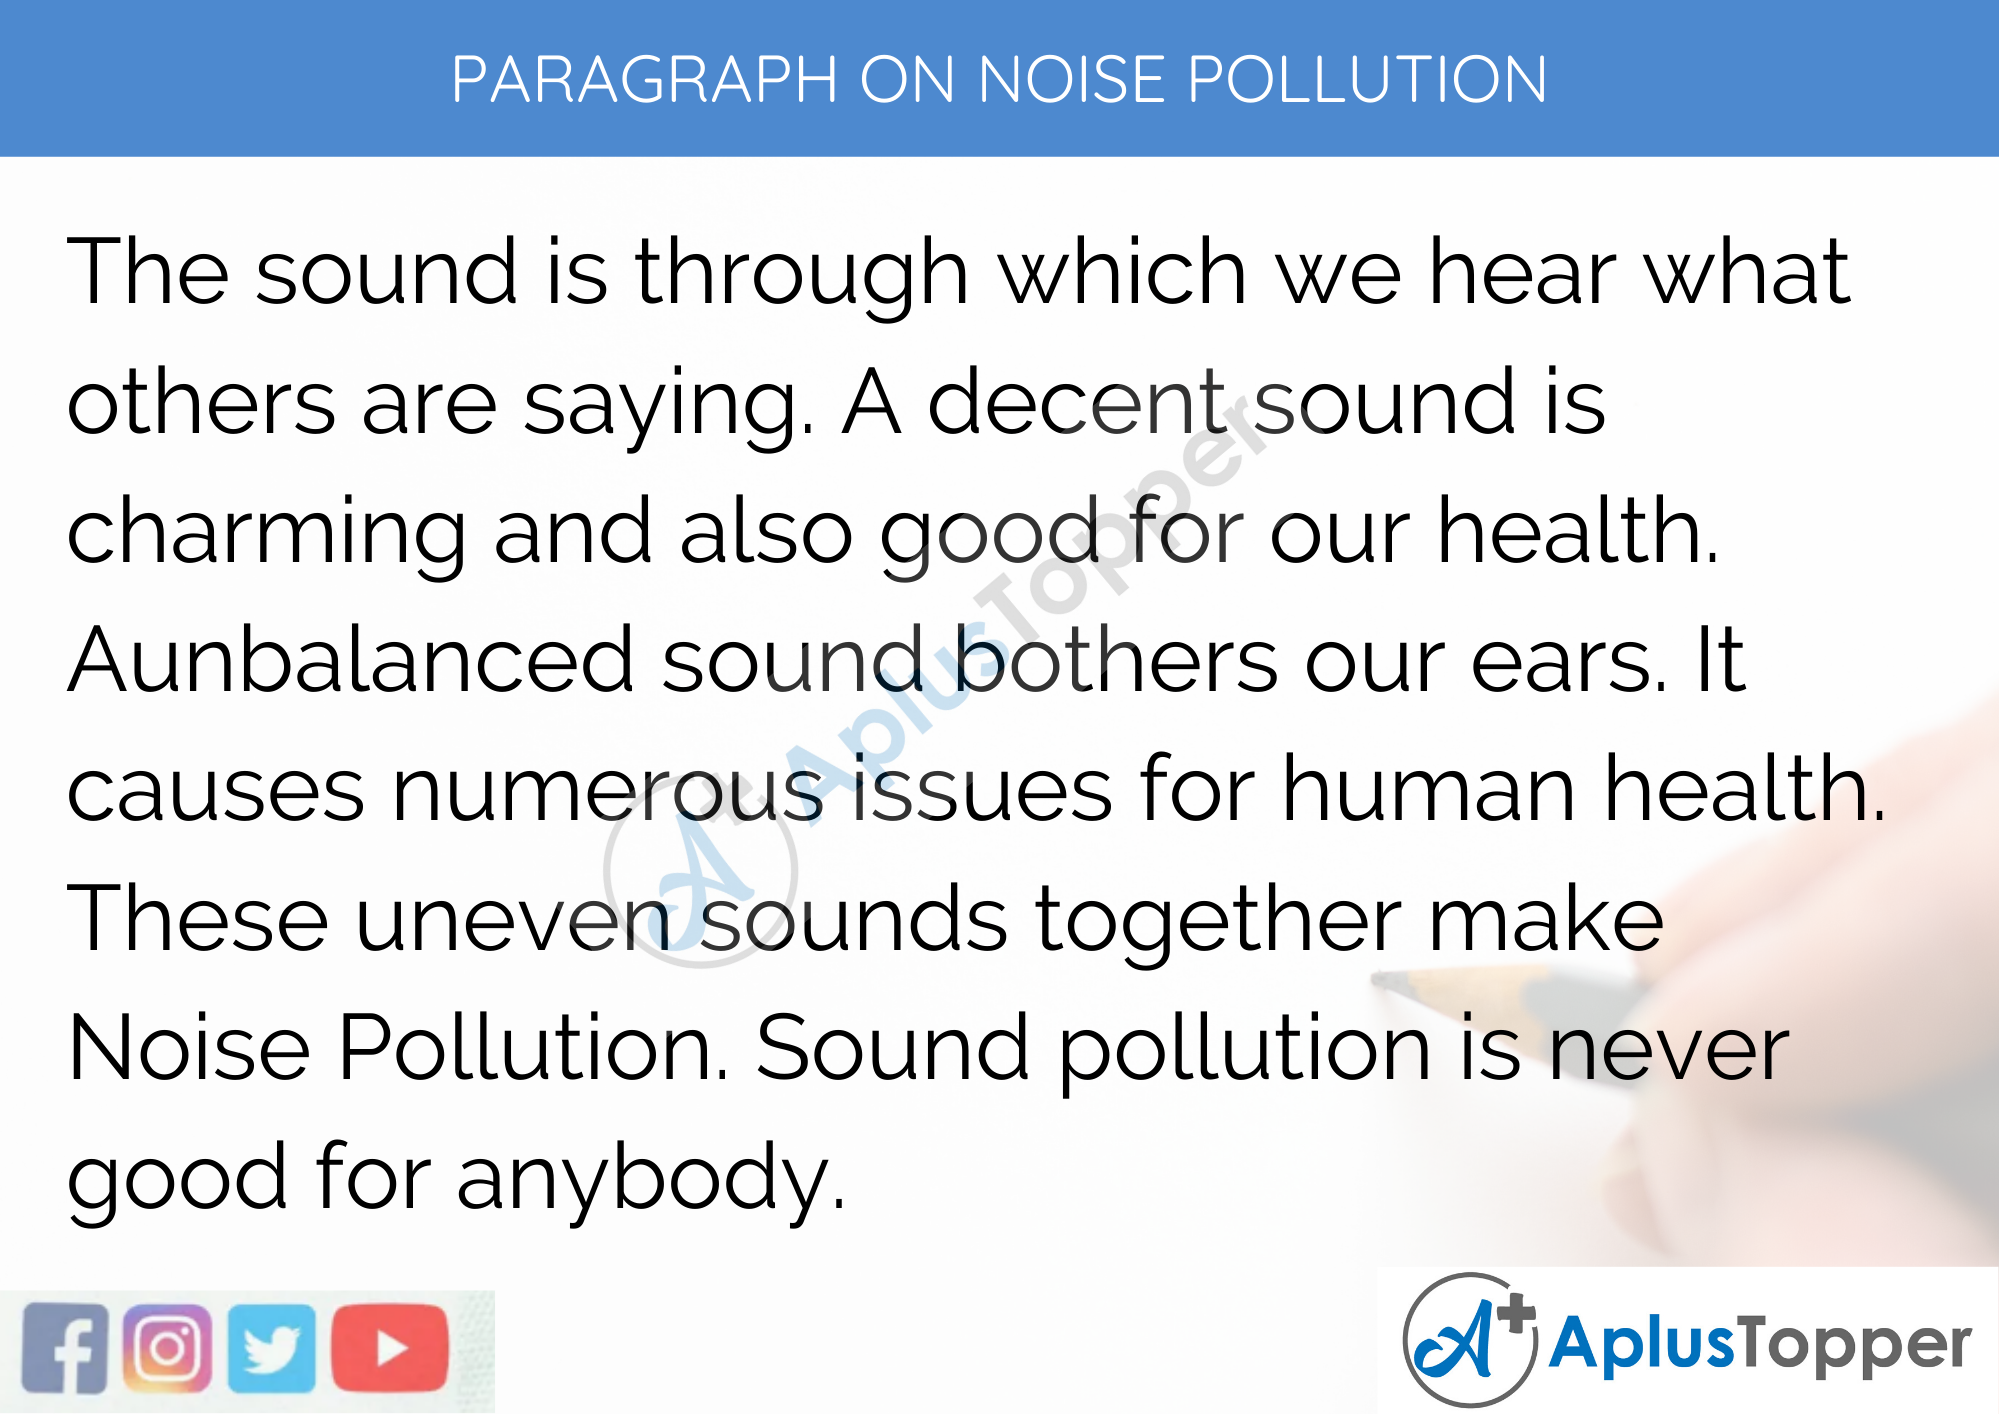 Paragraph On Noise Pollution - 100 Words for Classes 1, 2, 3 Kids